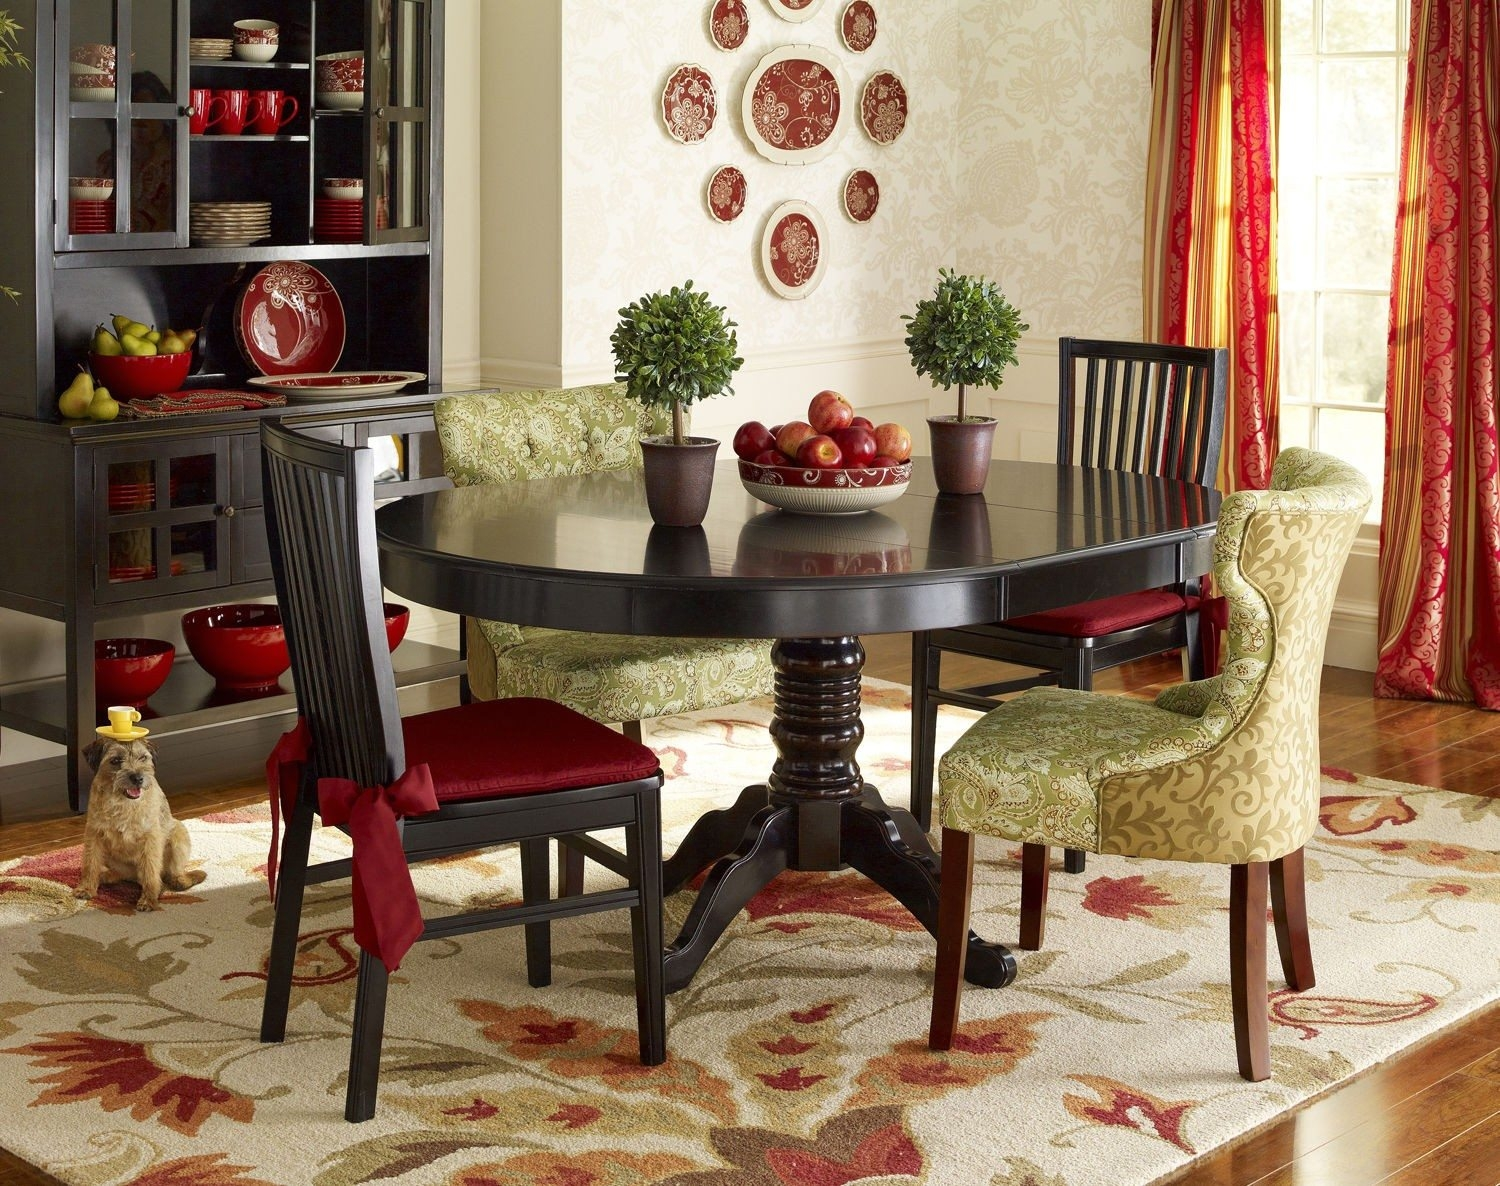 Small dining room stunning designs for 2016 small homes 1 for Dining room styles 2016